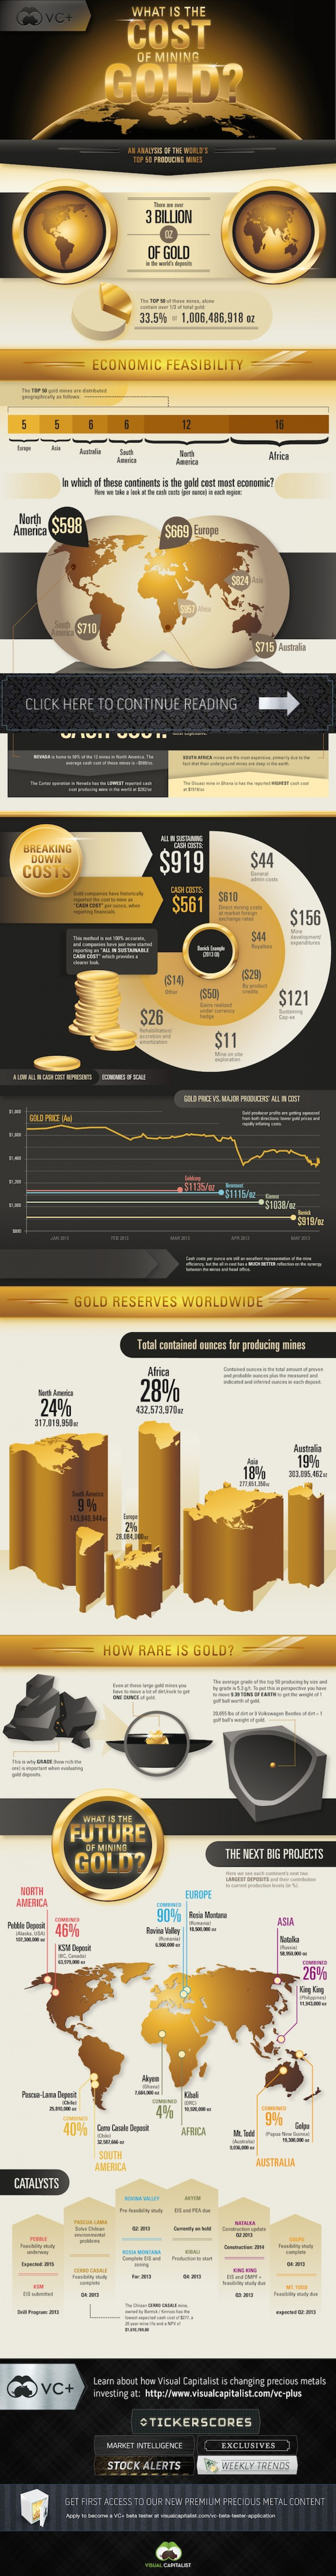 VC+ Exclusive | What is the Cost of Mining Gold? Infographic